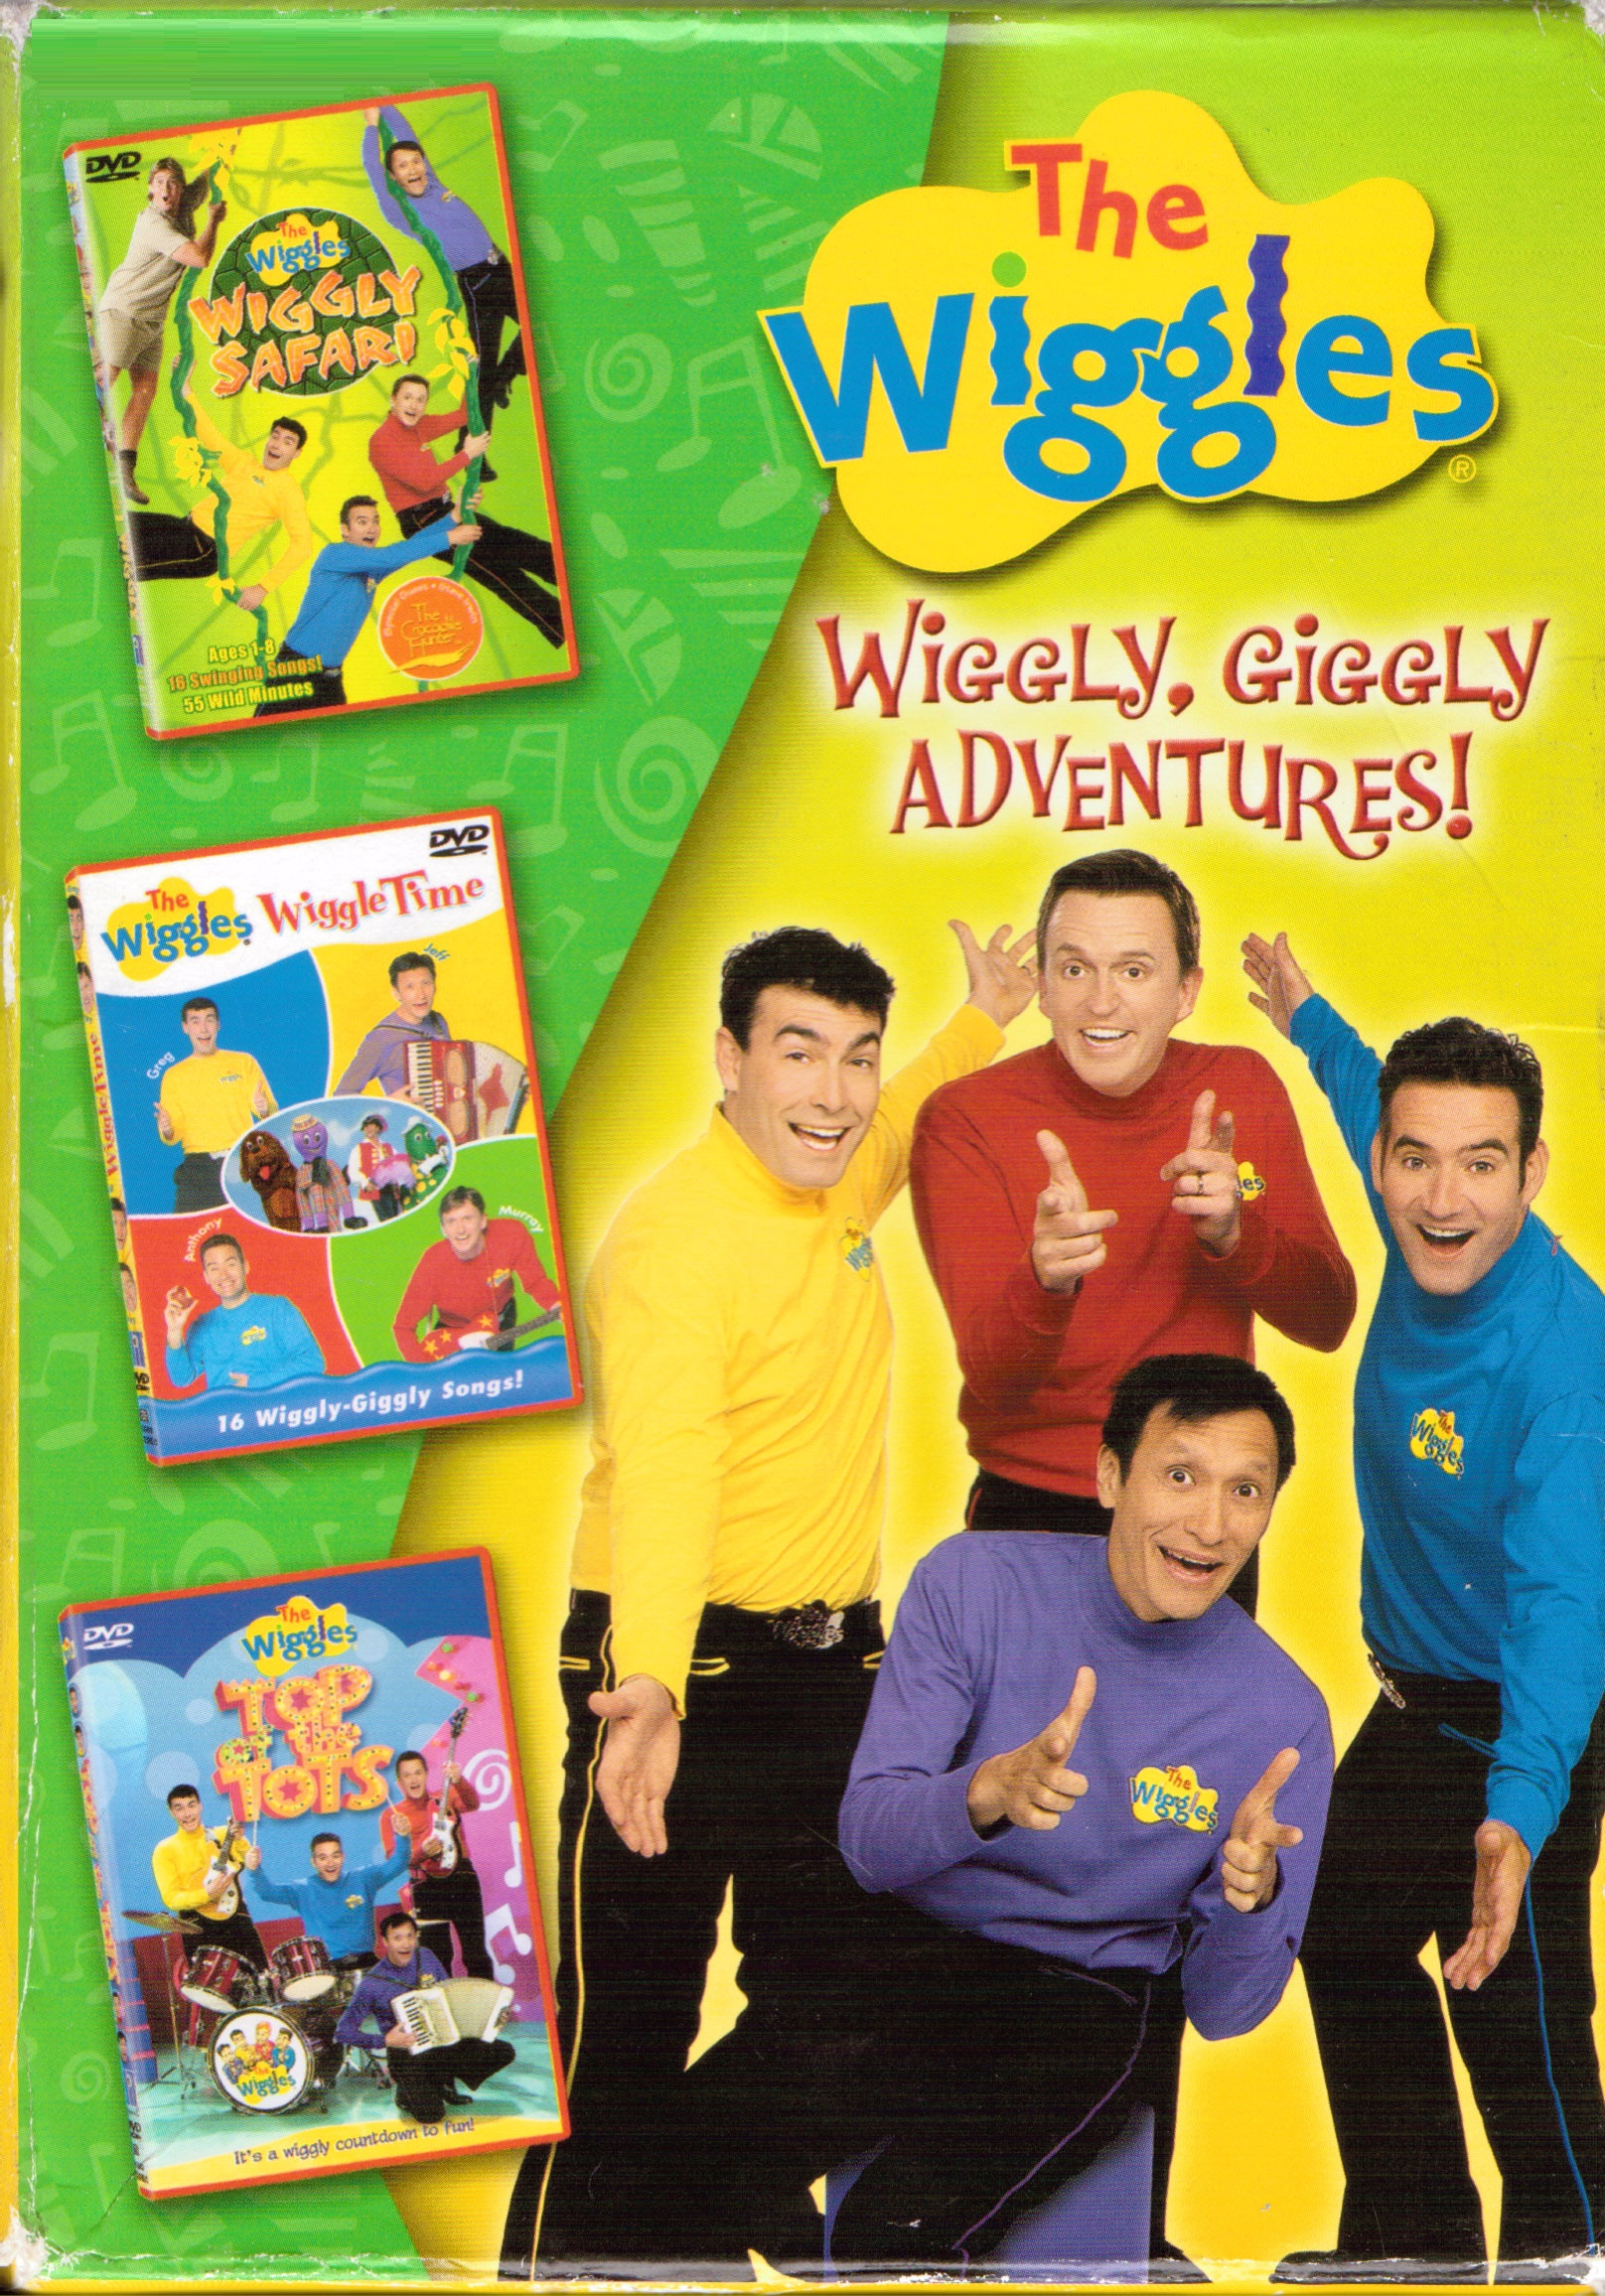 Wiggly  Giggly Adventures  - WikiWigglesThe Wiggles Wiggly Wiggly World Vhs